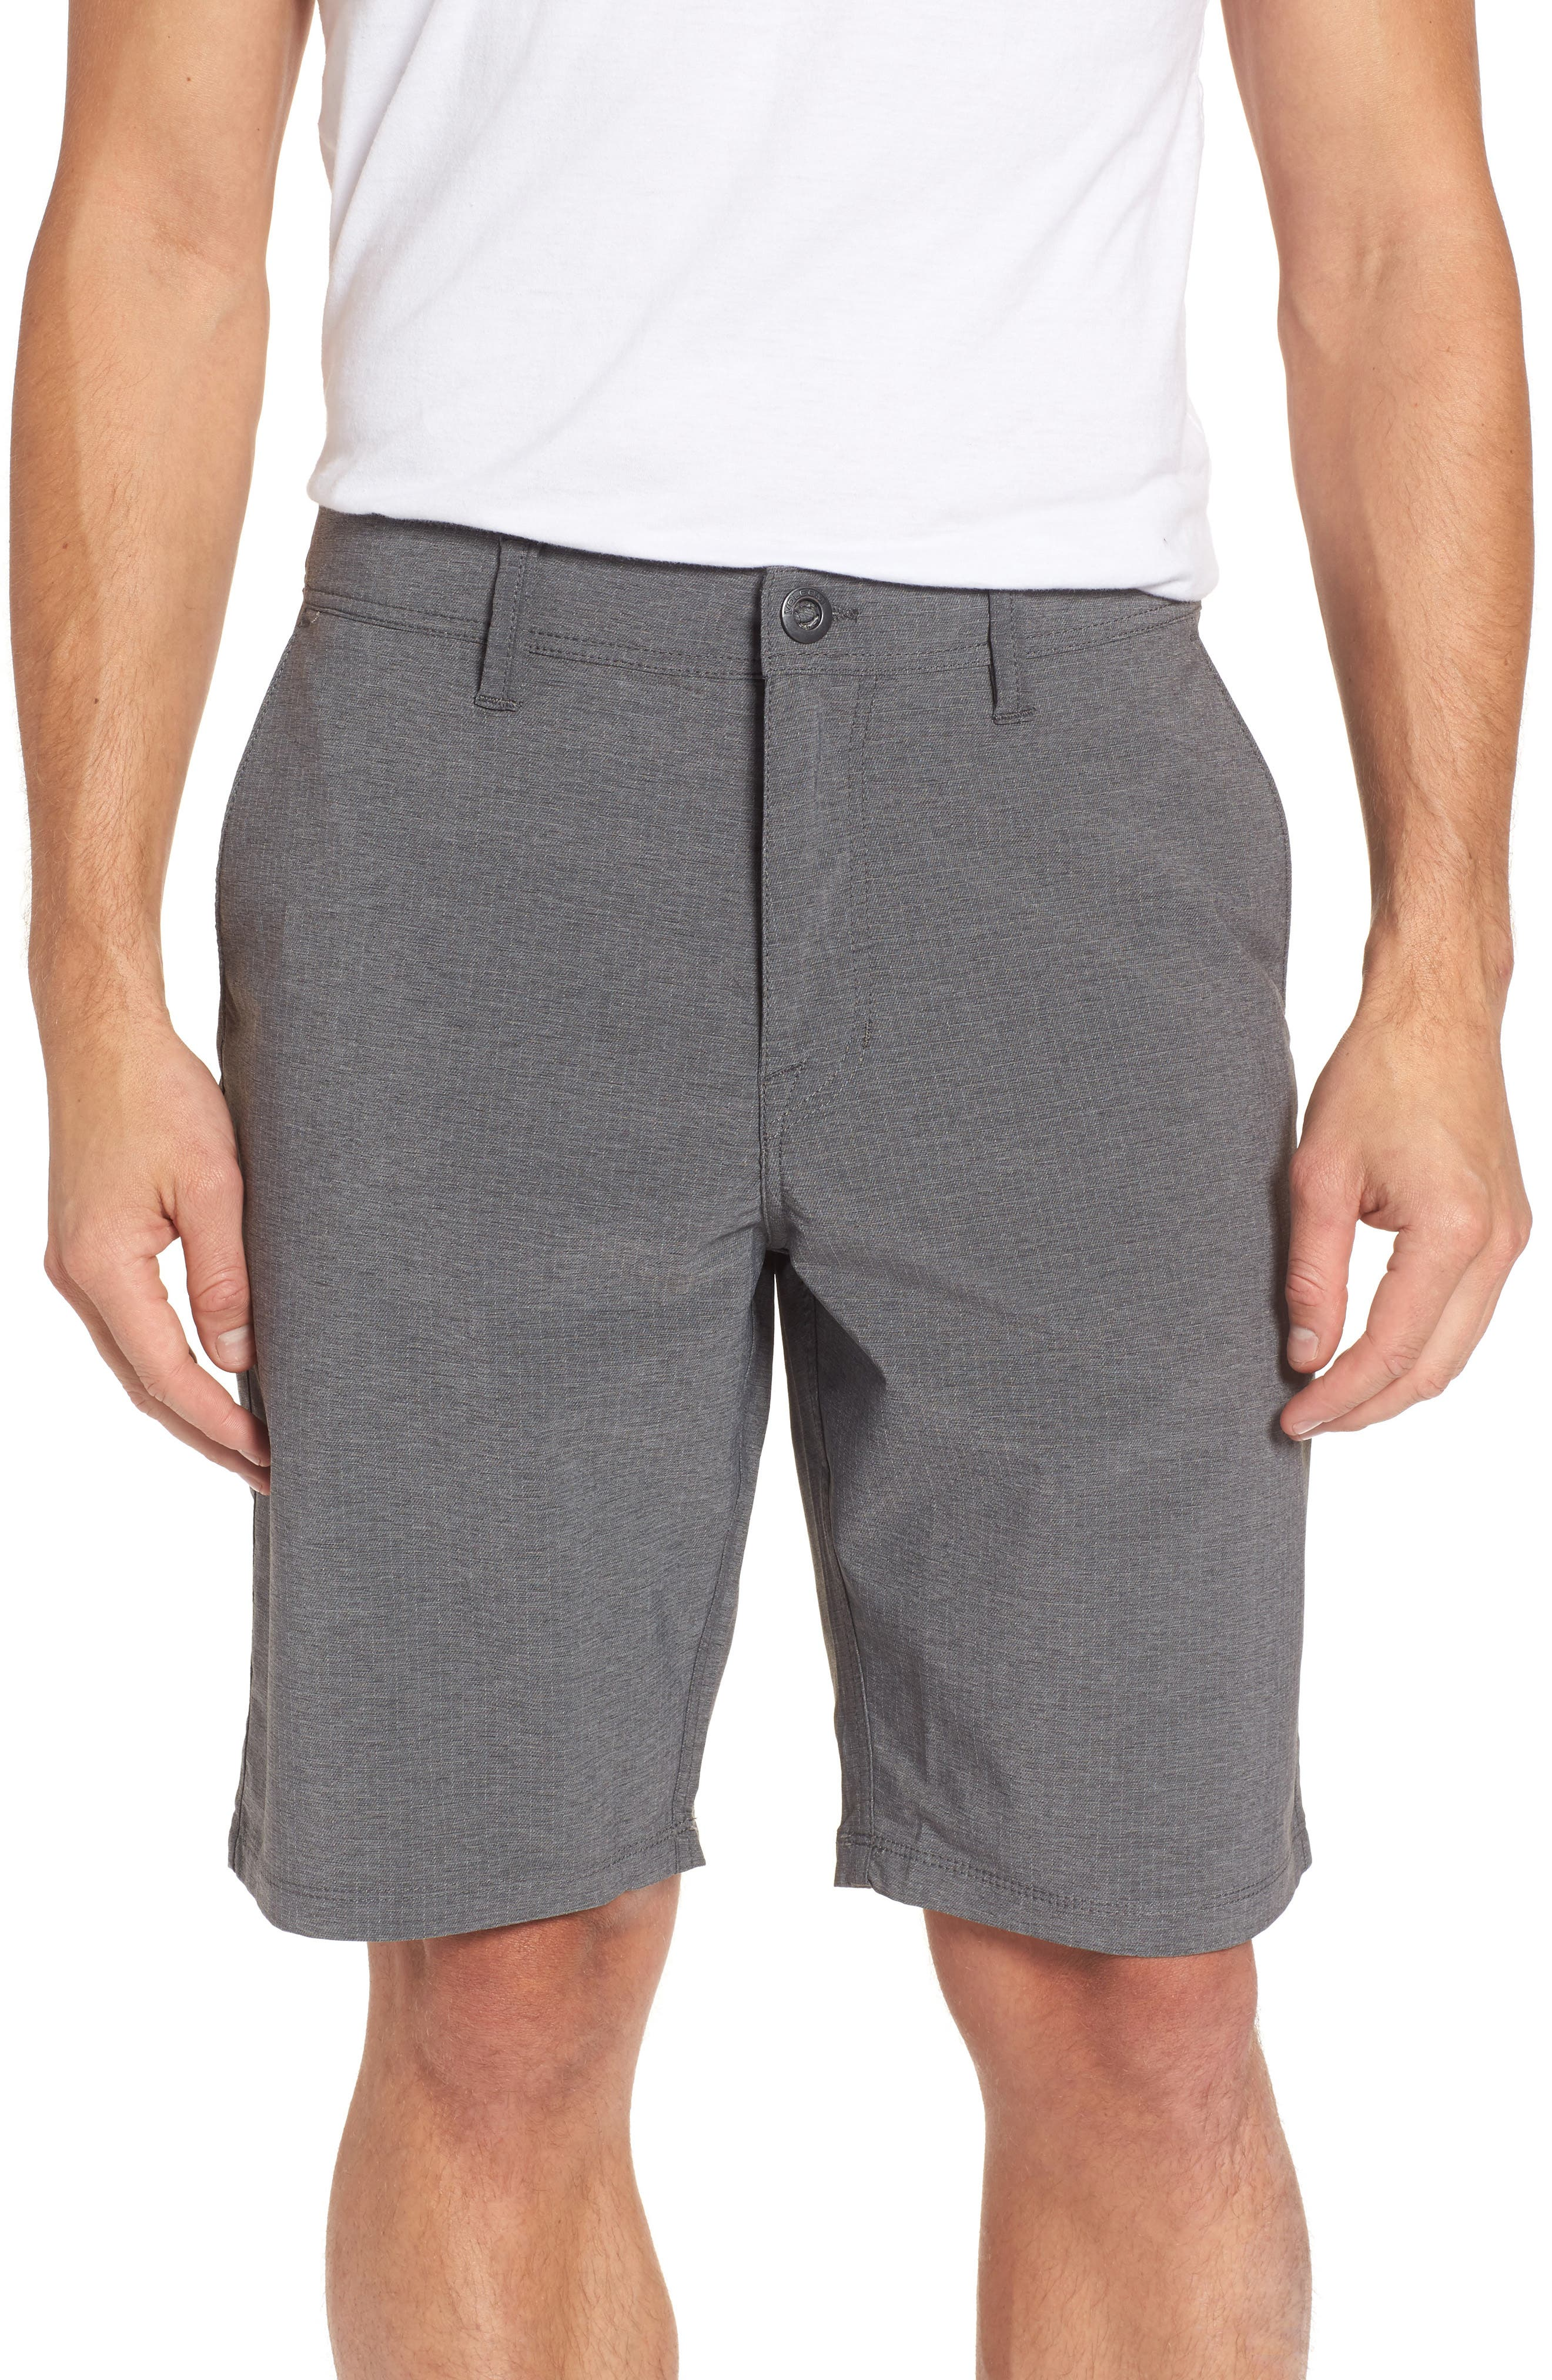 Surf 'N Turf Shorts,                         Main,                         color, 020